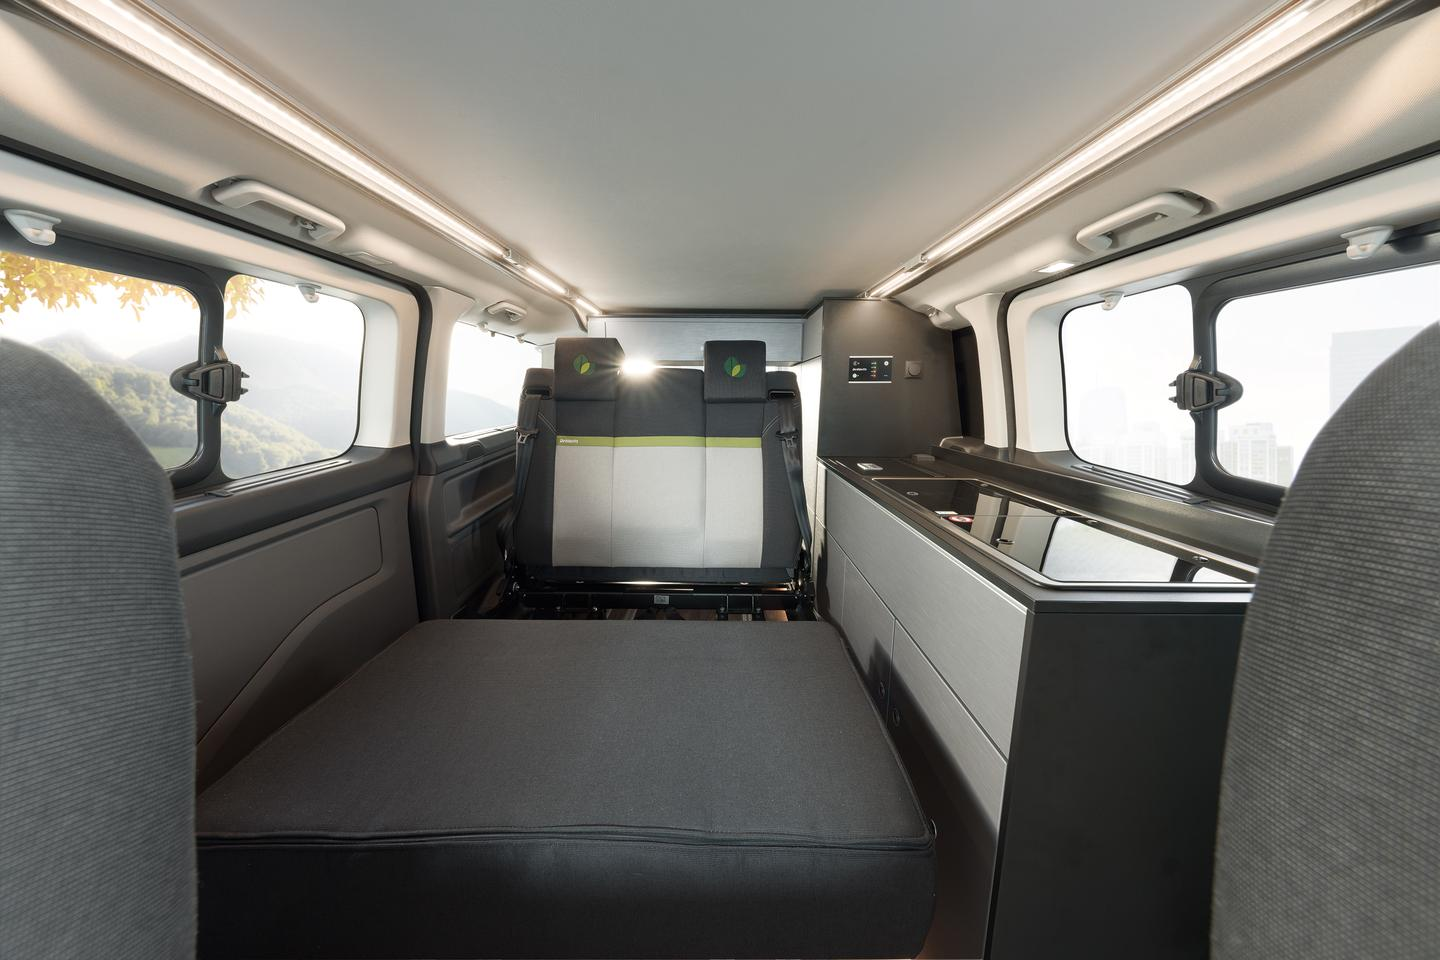 Dethleffs makes camping greener with plug-in camper van